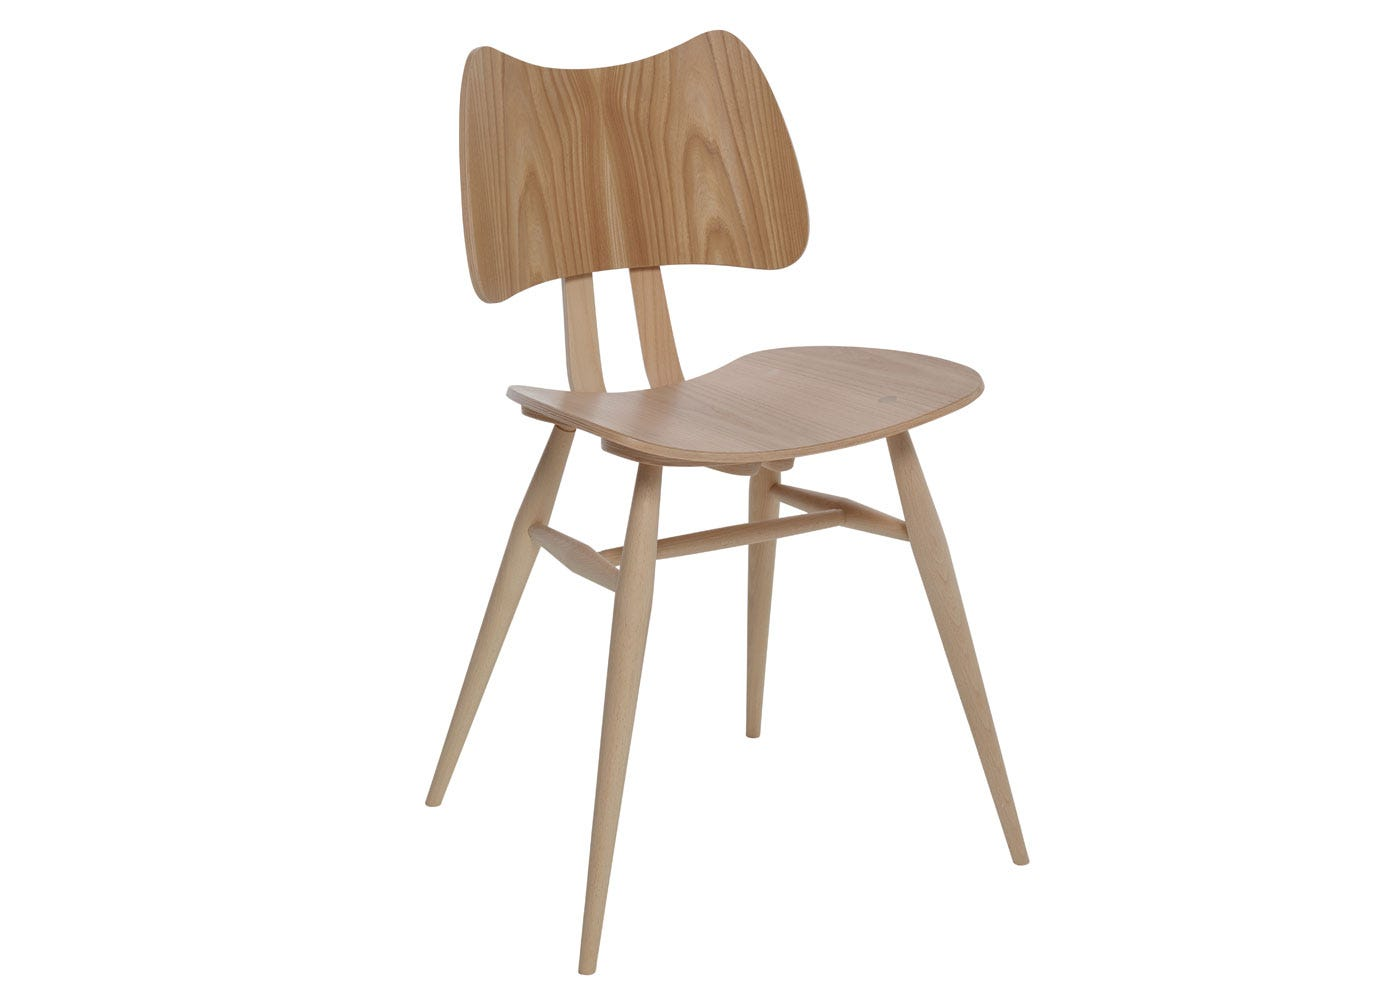 As shown: Originals Butterfly Chair Beech and Elm - Side Profile.